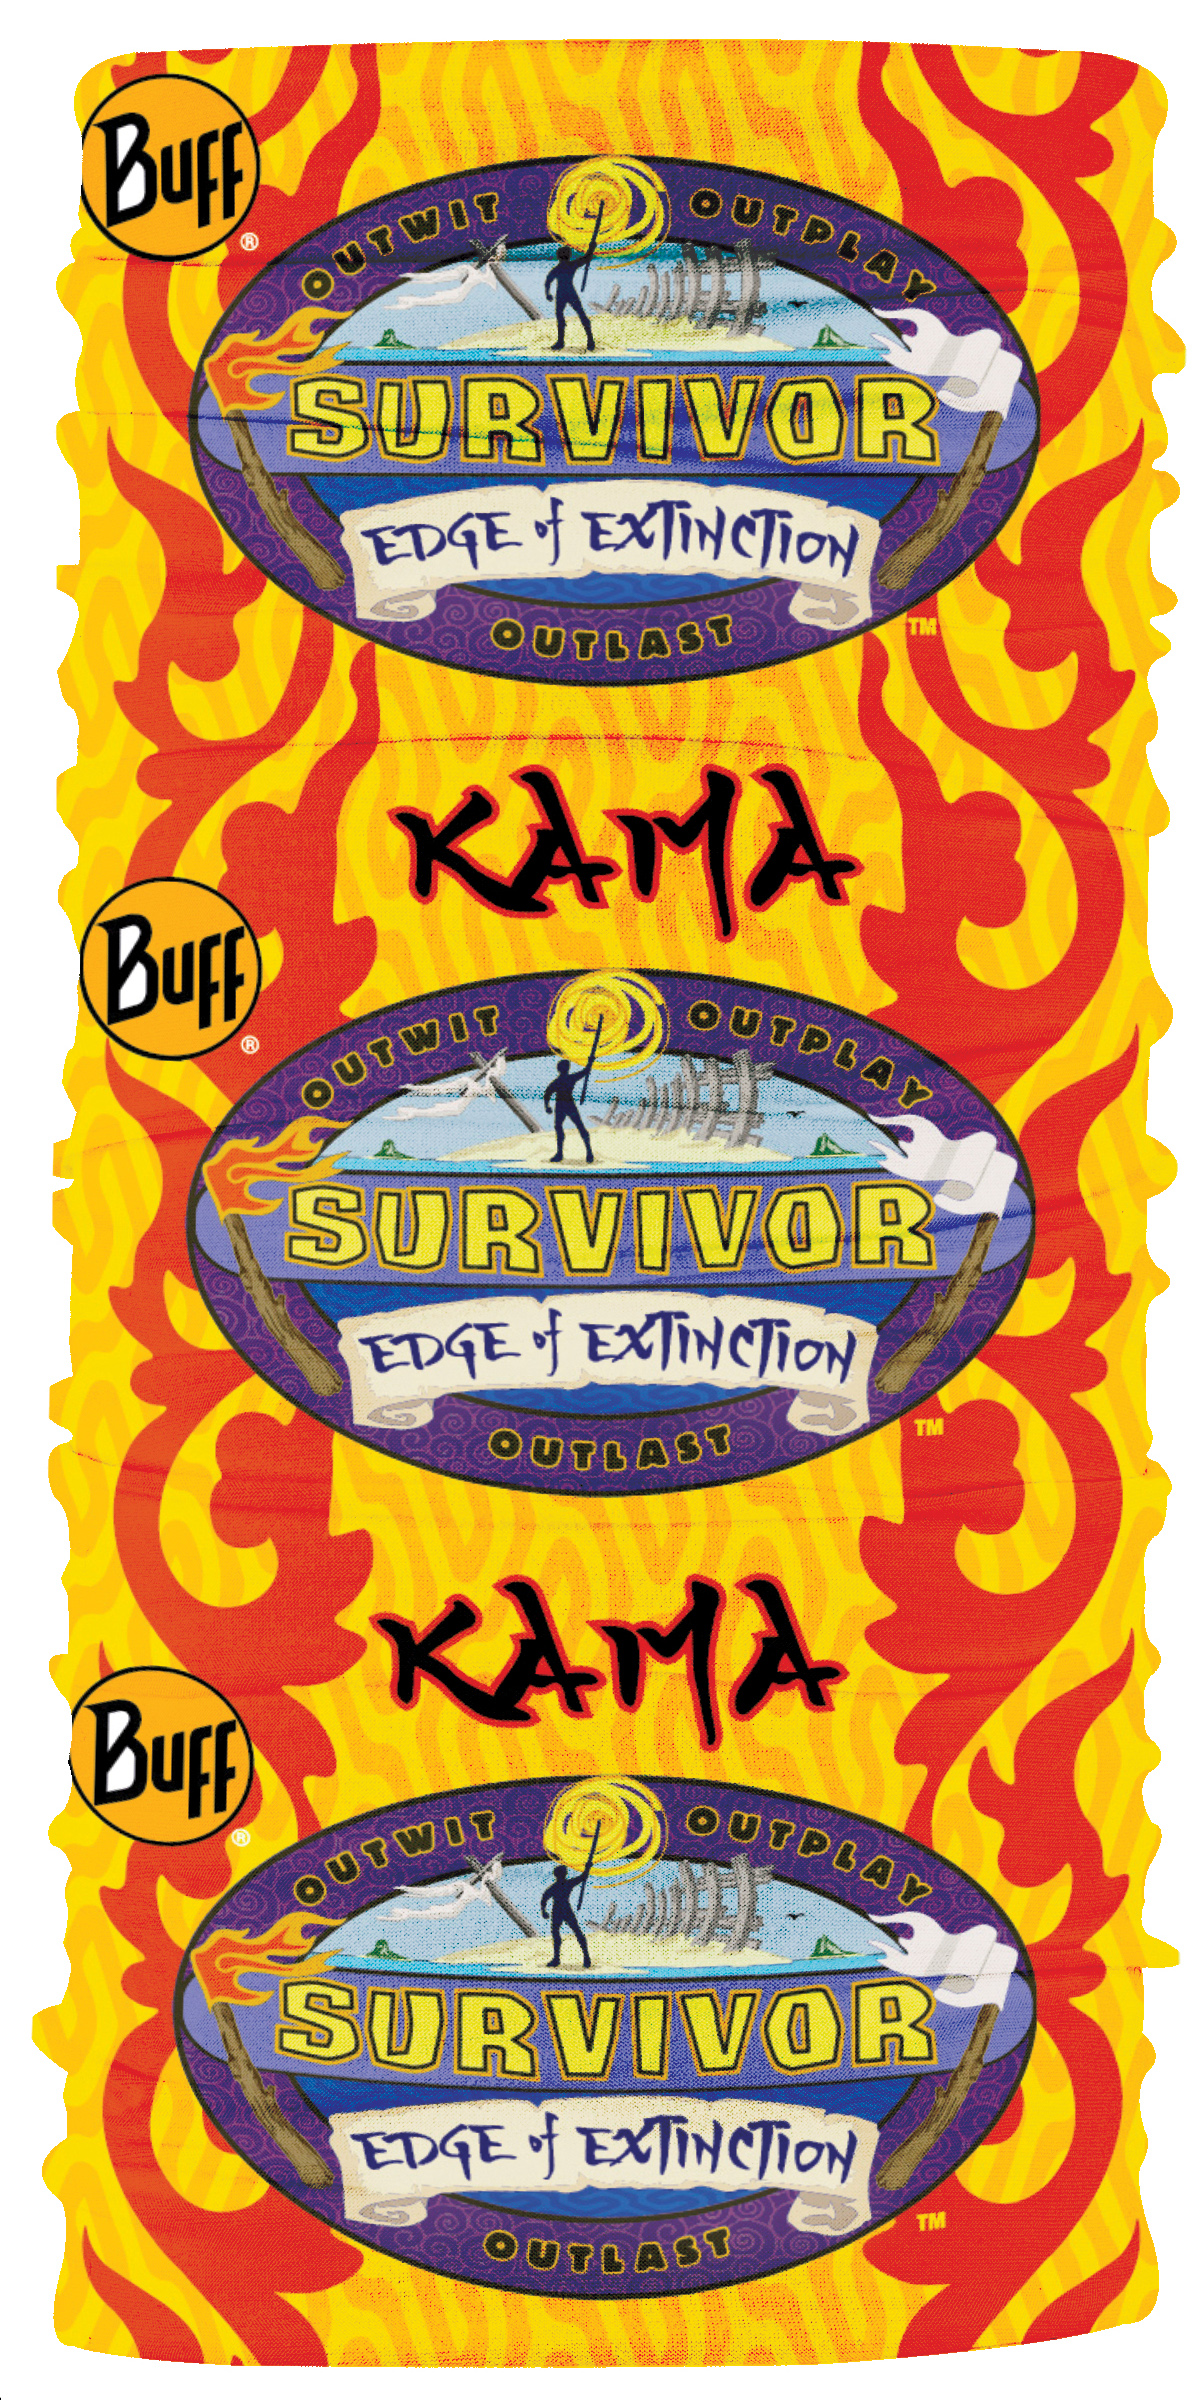 Original Survivor Survivor 38 Yellow